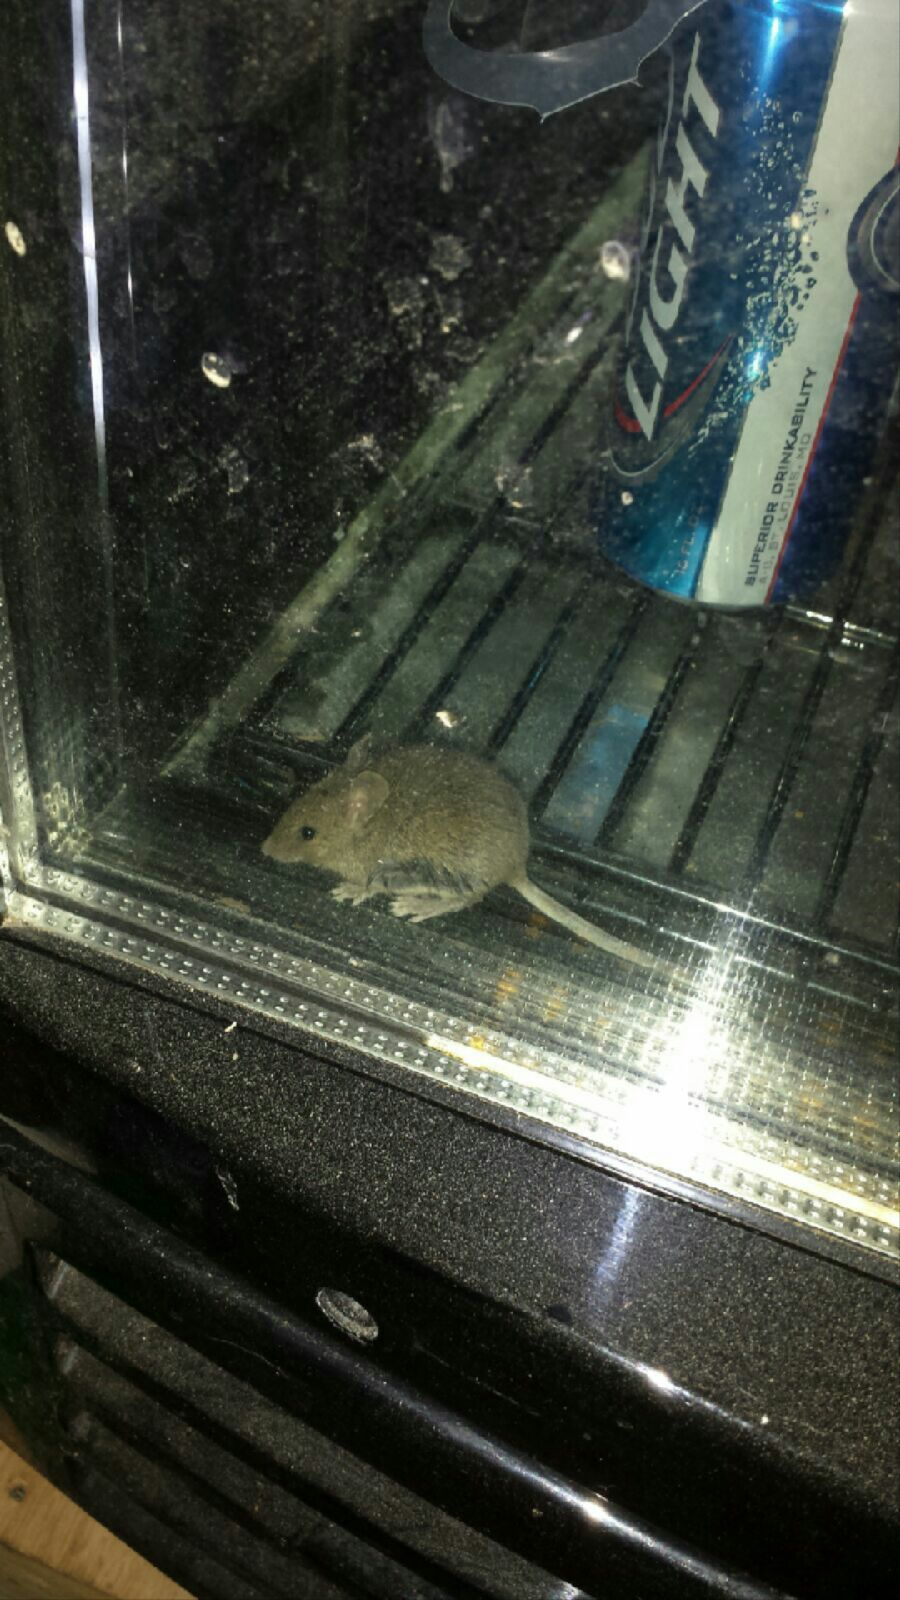 Mouse in a cooler.